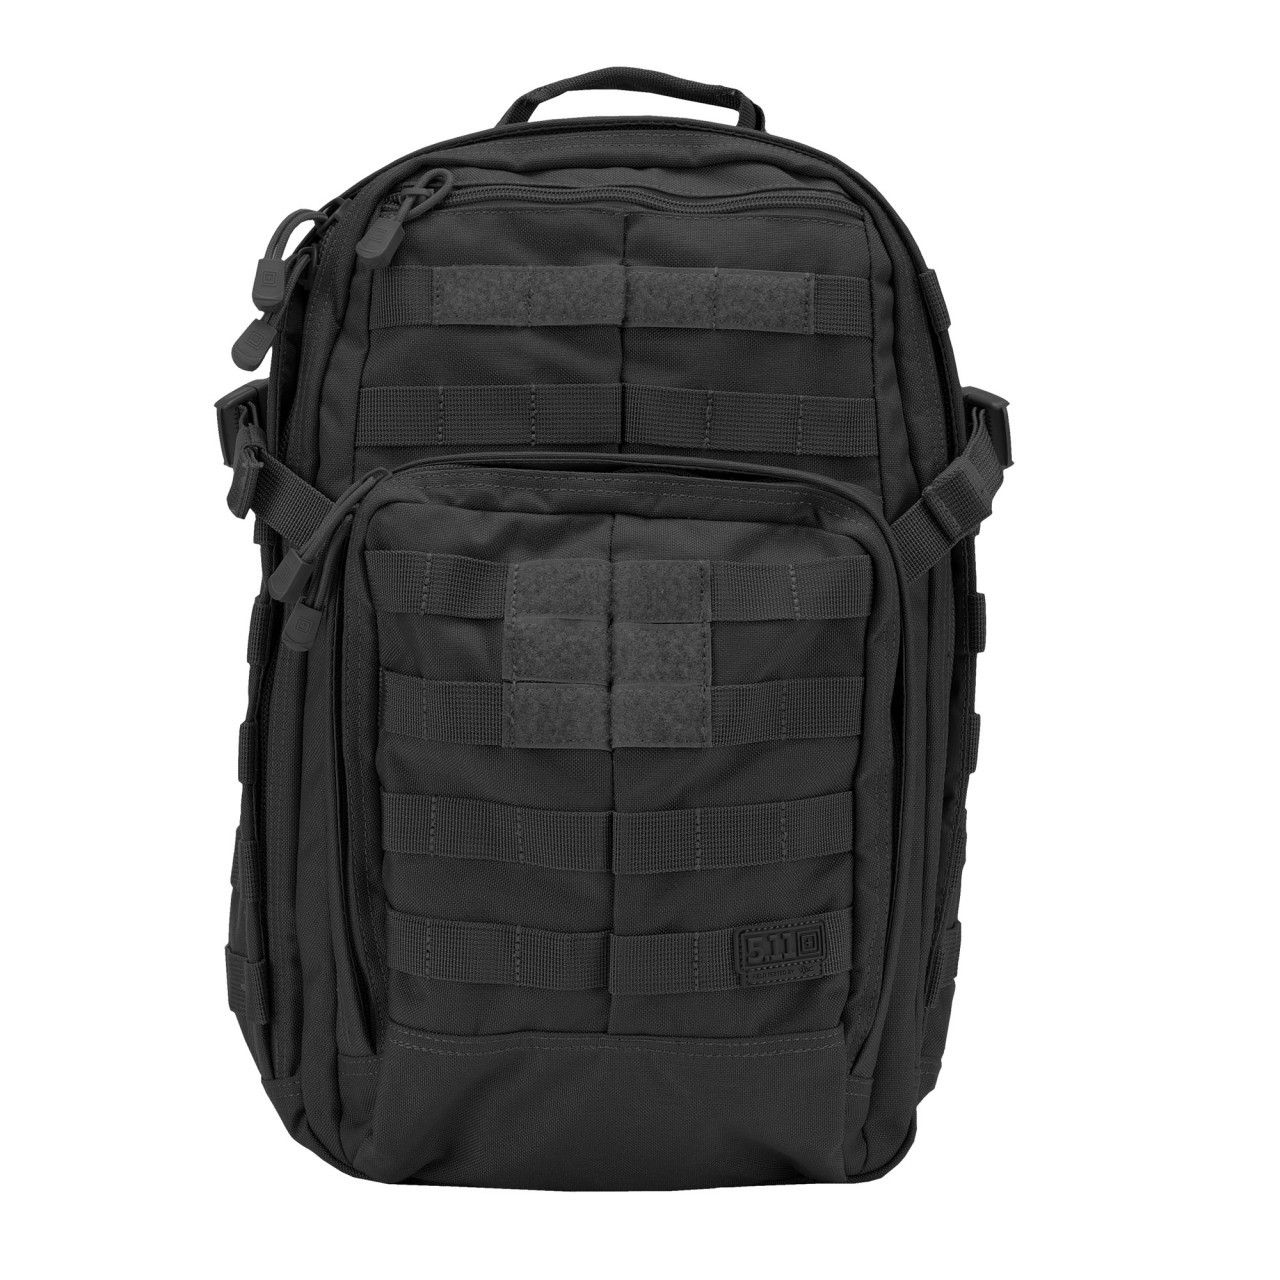 5.11 Tactical Rush 12 Backpack | 12., Philippines and Asia